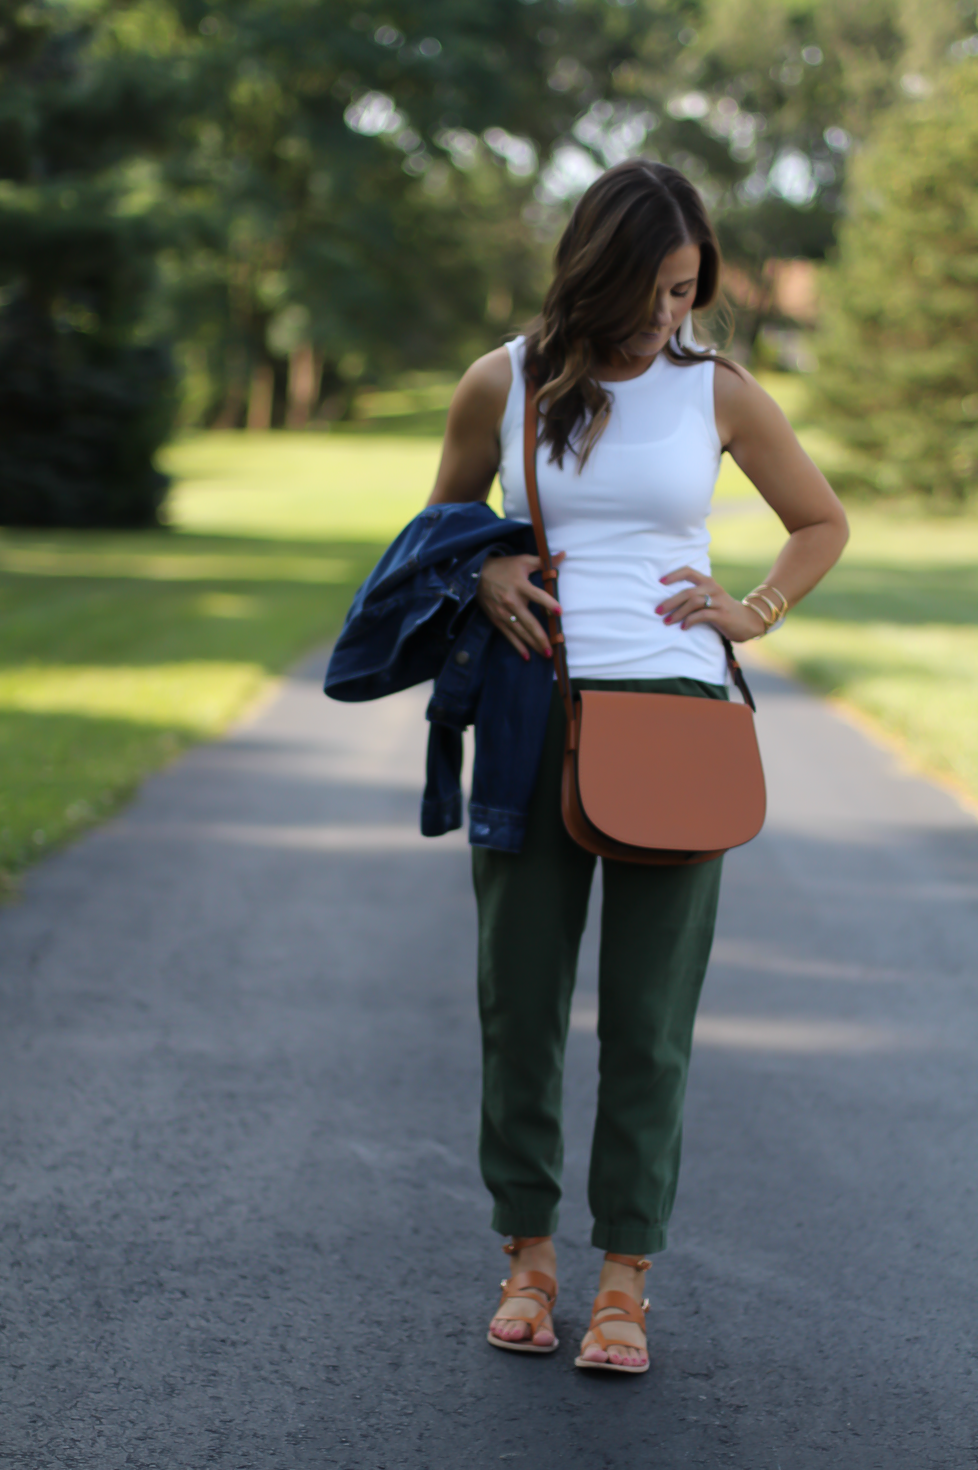 Army Green Joggers, White Sleeveless Shell Tee, Gladiator Sandals, Saddle Bag, J.Crew, tory Burch, Ancient Gladiator 5